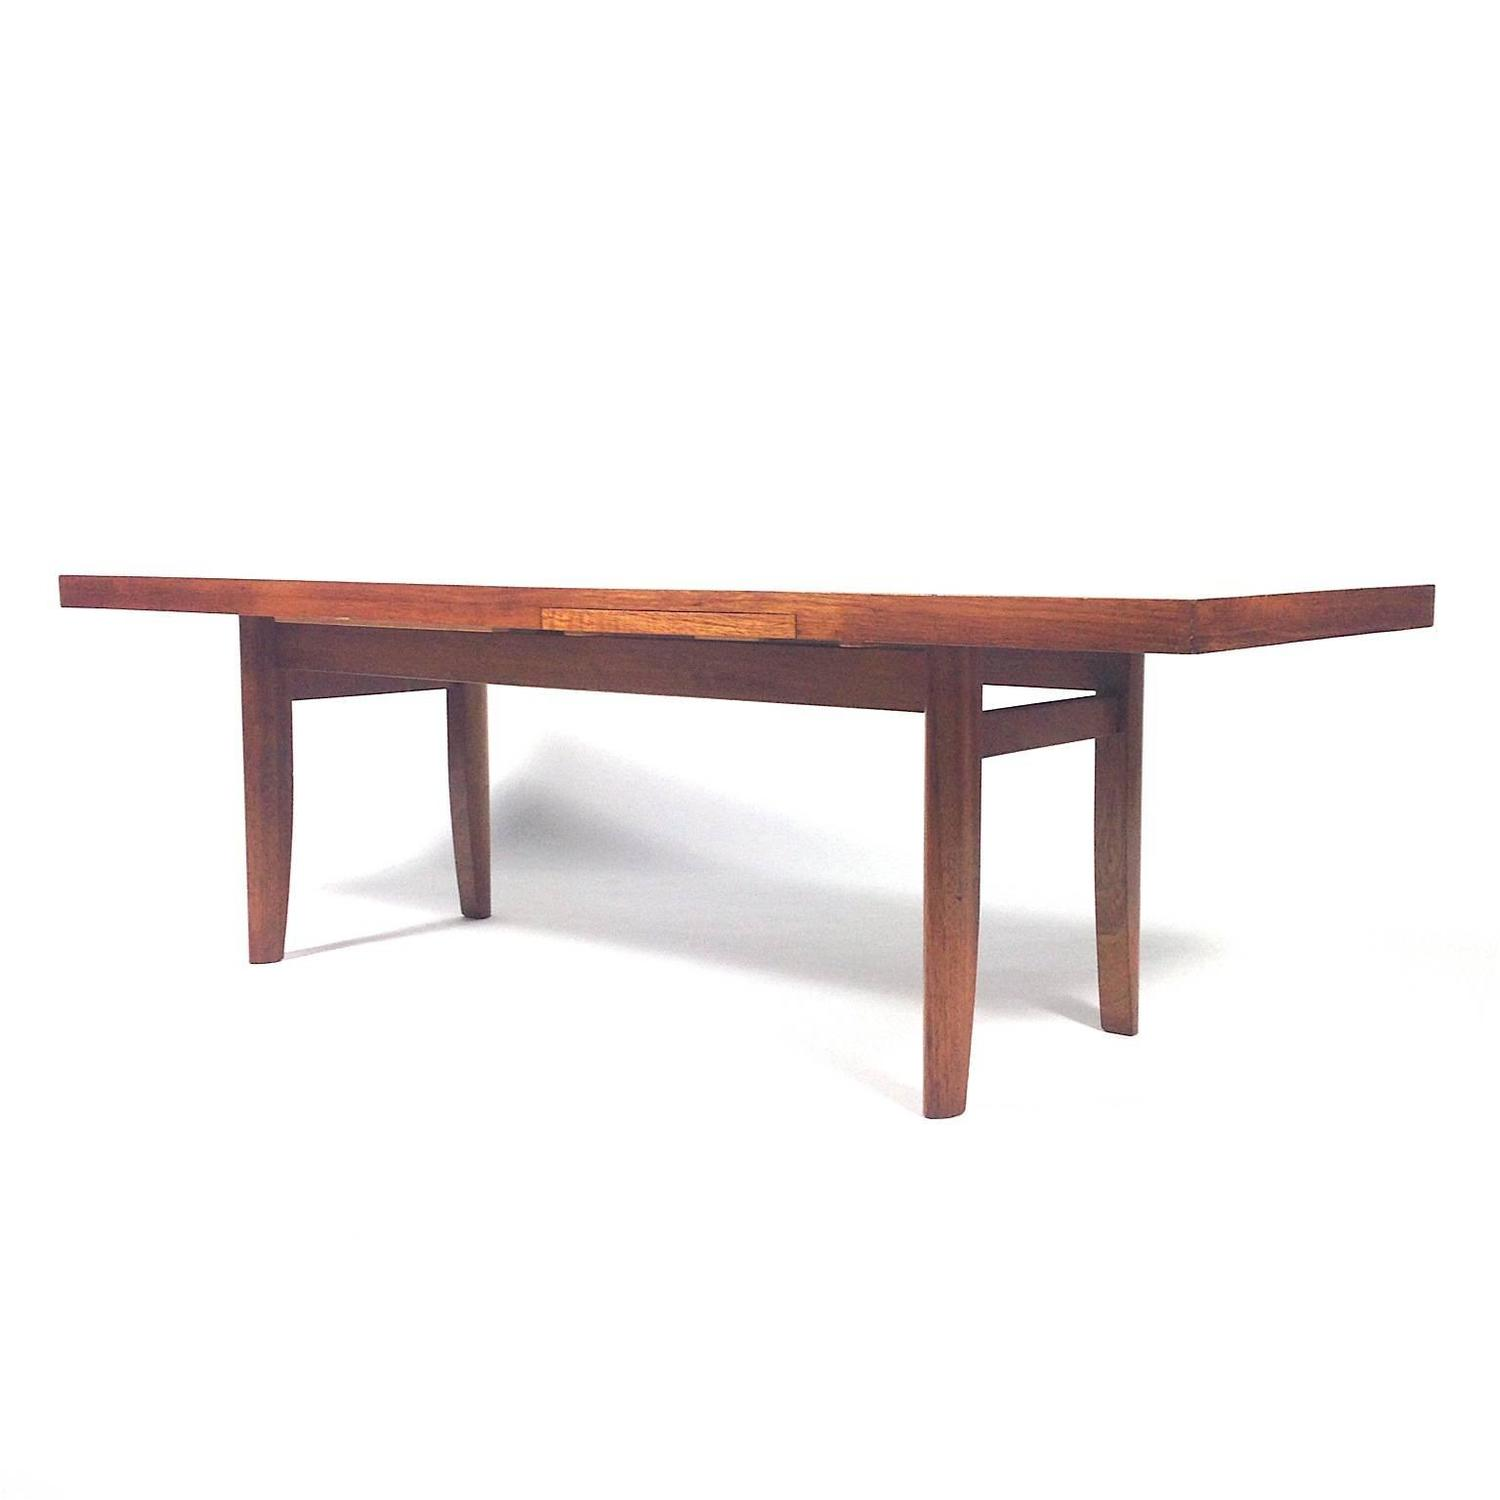 1960s Scandinavian Coffee Table With Extractable White Leaves At 1stdibs